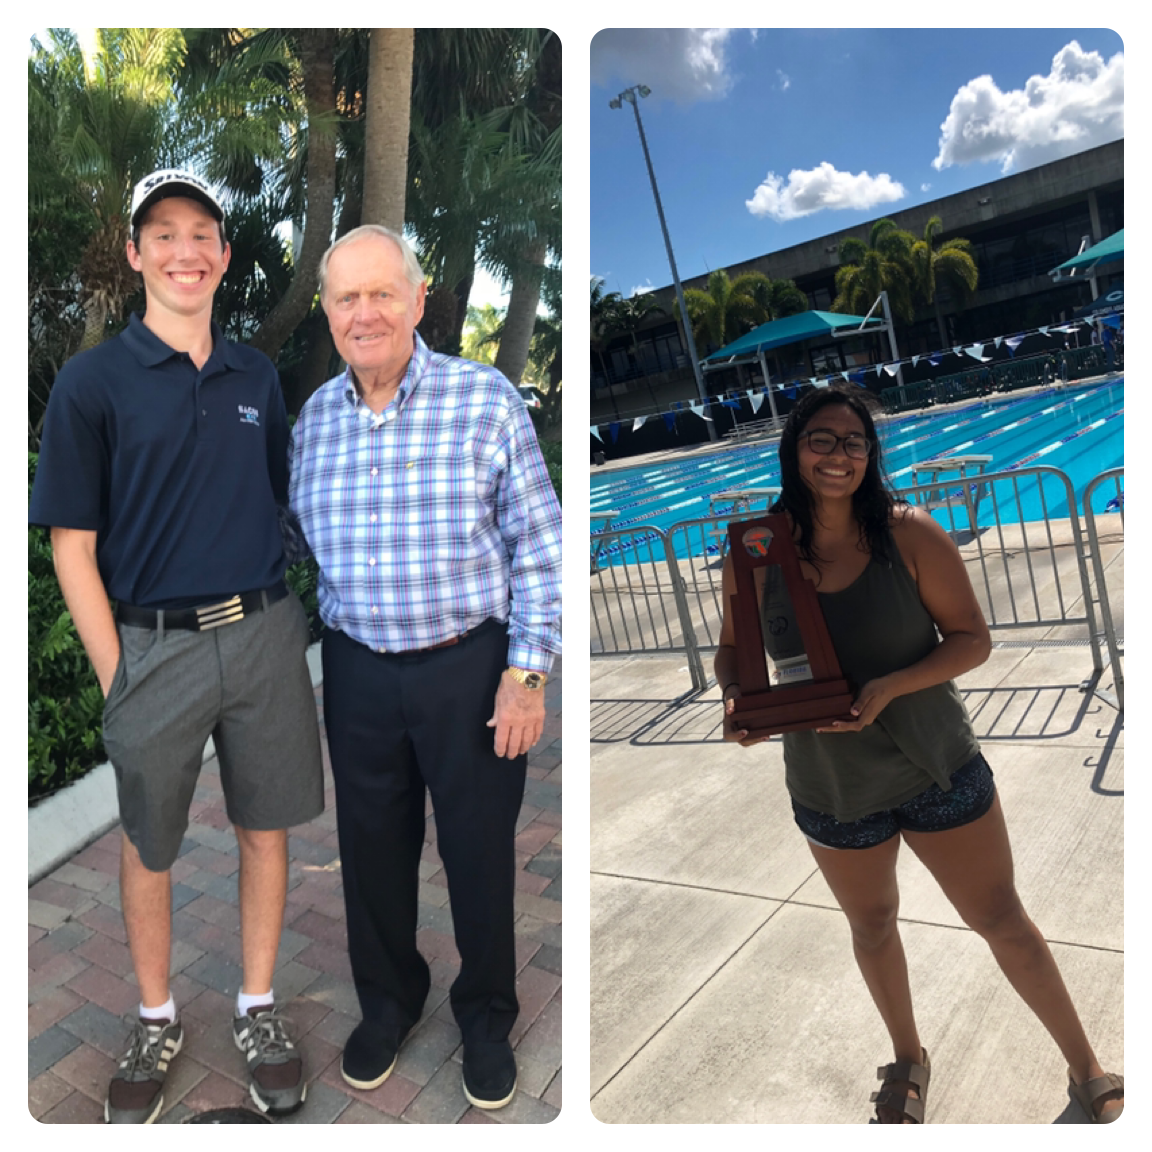 Senior golfer Max Rego (left) poses with golf legend Jack Nicklaus. Senior swimmer Camila Torres (right) holds the district runner-up trophy.